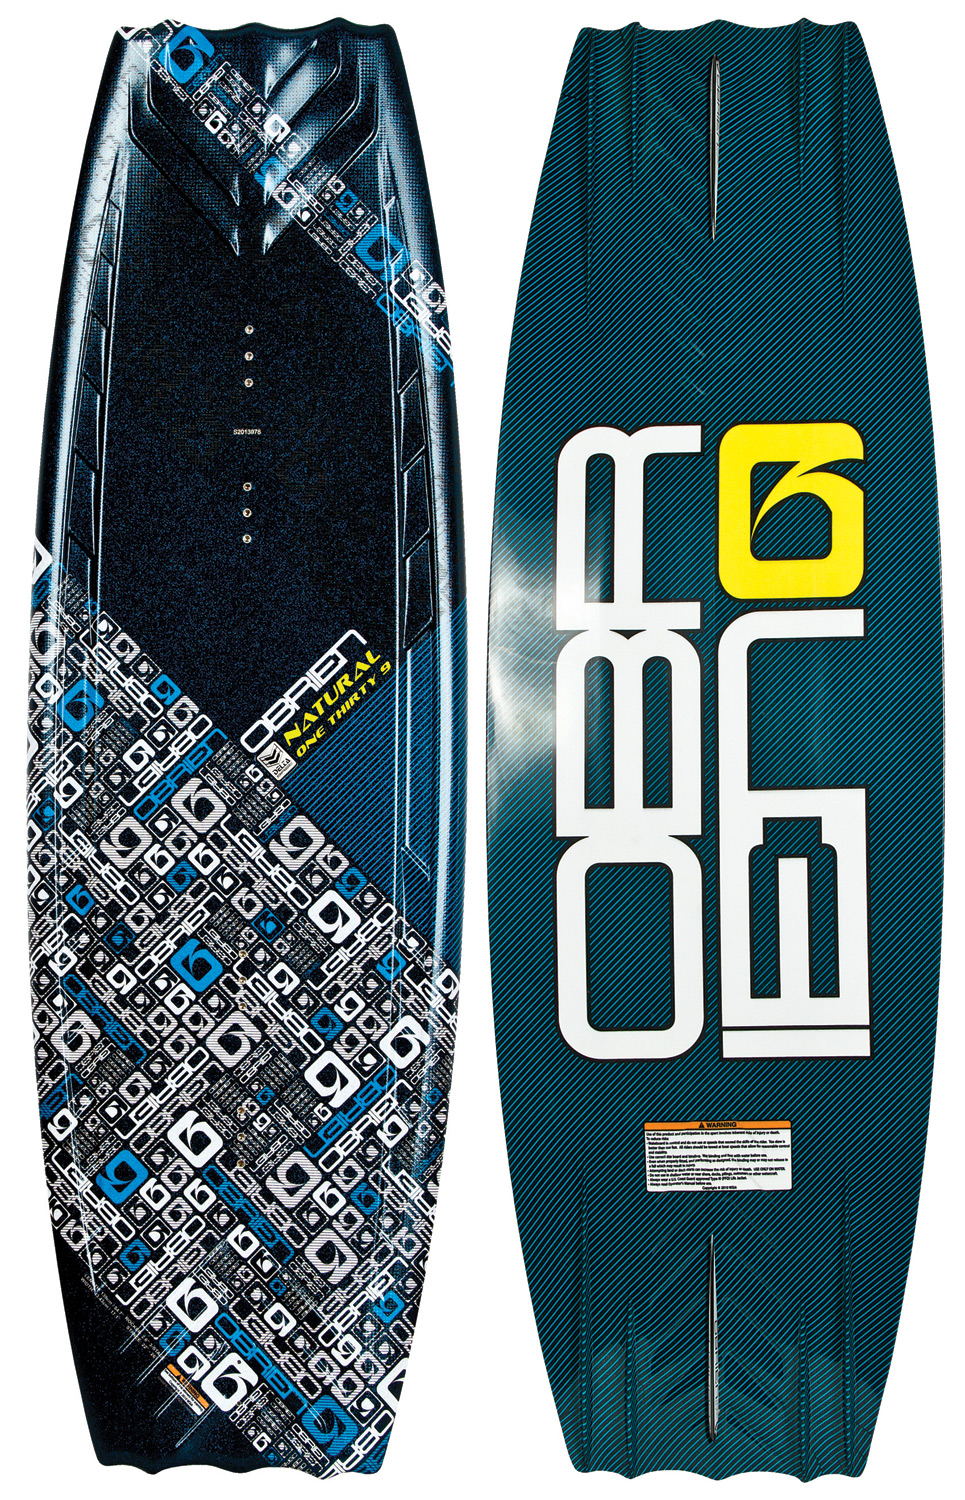 Wake The board that started O'Brien's Delta base revolution, the O'Brien Natural Wakeboard! The Natural's full profile and wide tips are ideally suited to the rider who prefers a slightly tail-heavy approach to the wake. The blended 3-stage rocker construction kicks the tail into the wake, generating greater vertical pop. The variable beveled edge and quad molded fins provide secure edging, even when you're not using the optional center fin. This board is the perfect blend of durability and high performance. The O'Brien Natural Wakeboard, one ride is all it takes!  DELTA base   Full profile and wide tips   3-stage rocker   Variable beveled edge and quad molded fins   This board has some minor cosmetic defects-nothing that affects the performance   Wakeboard Binding Compatibility   Can accommodate bindings with a 6 inch binding plate   Can only accommodate a single mounting position option for Liquid Force bindings with a 8 inch binding plate and offers two positions for all other vendors - $104.95